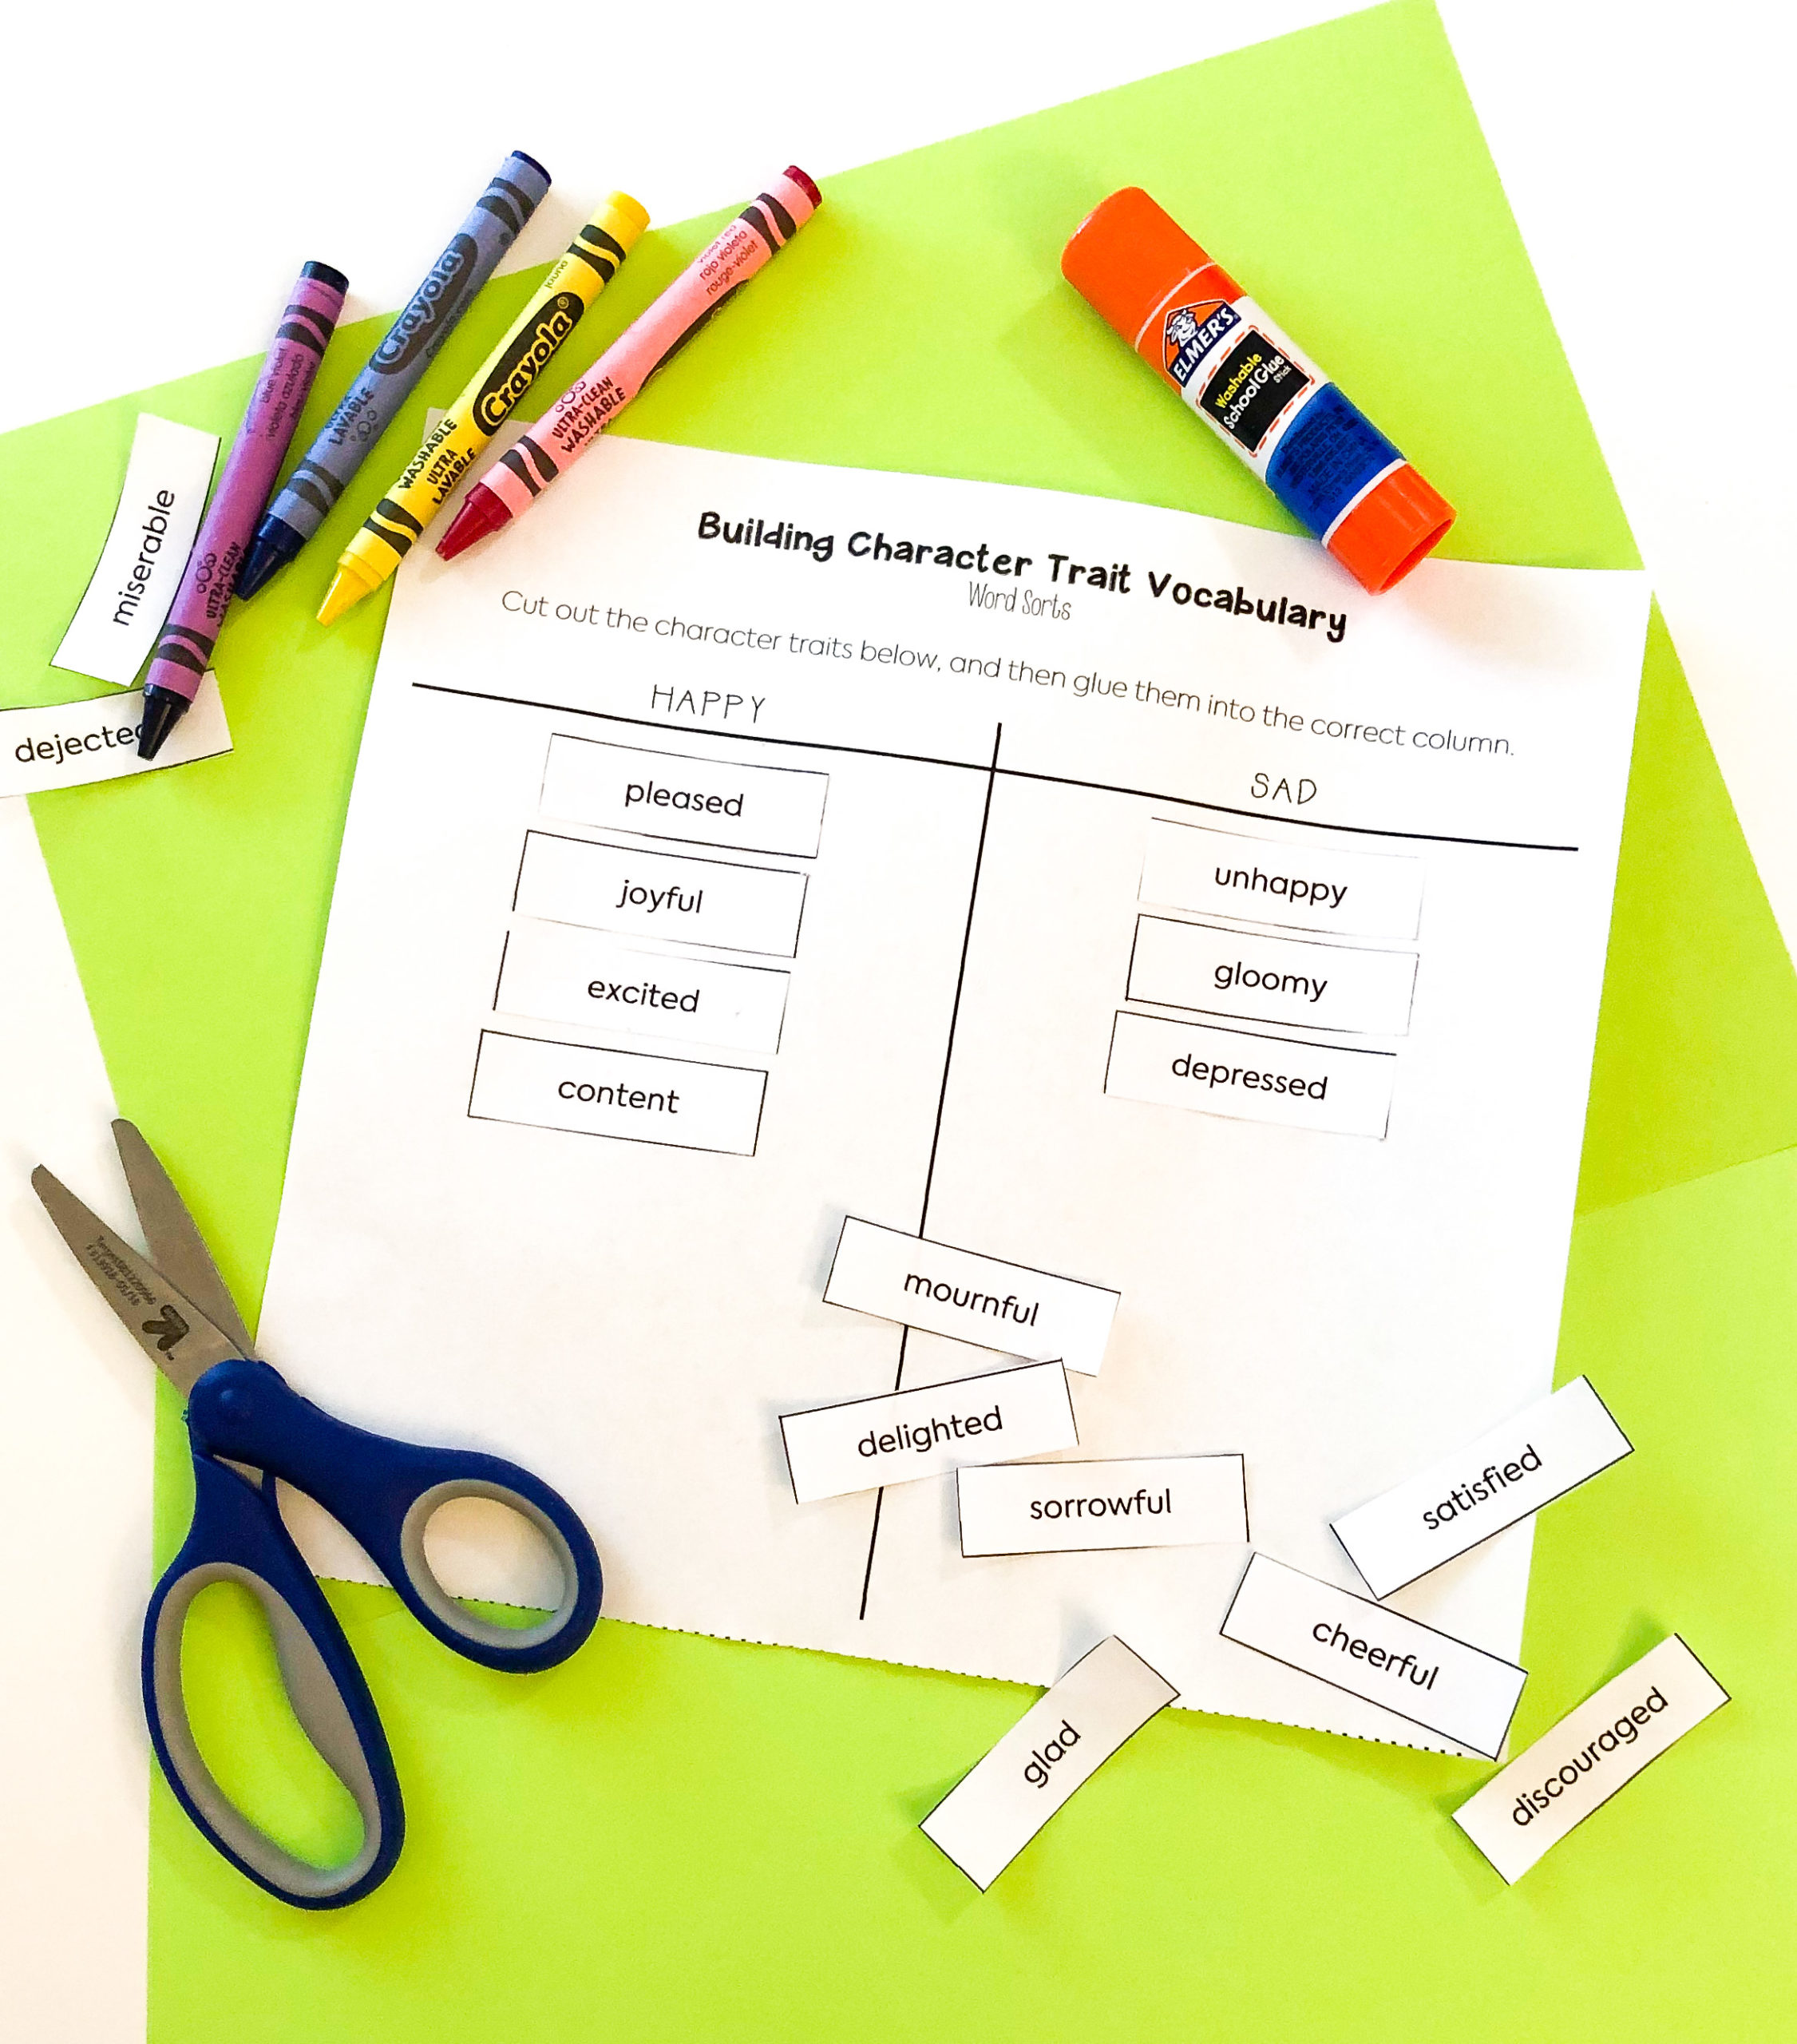 These word sort worksheets are an engaging way to help students practice with different character trait vocabulary